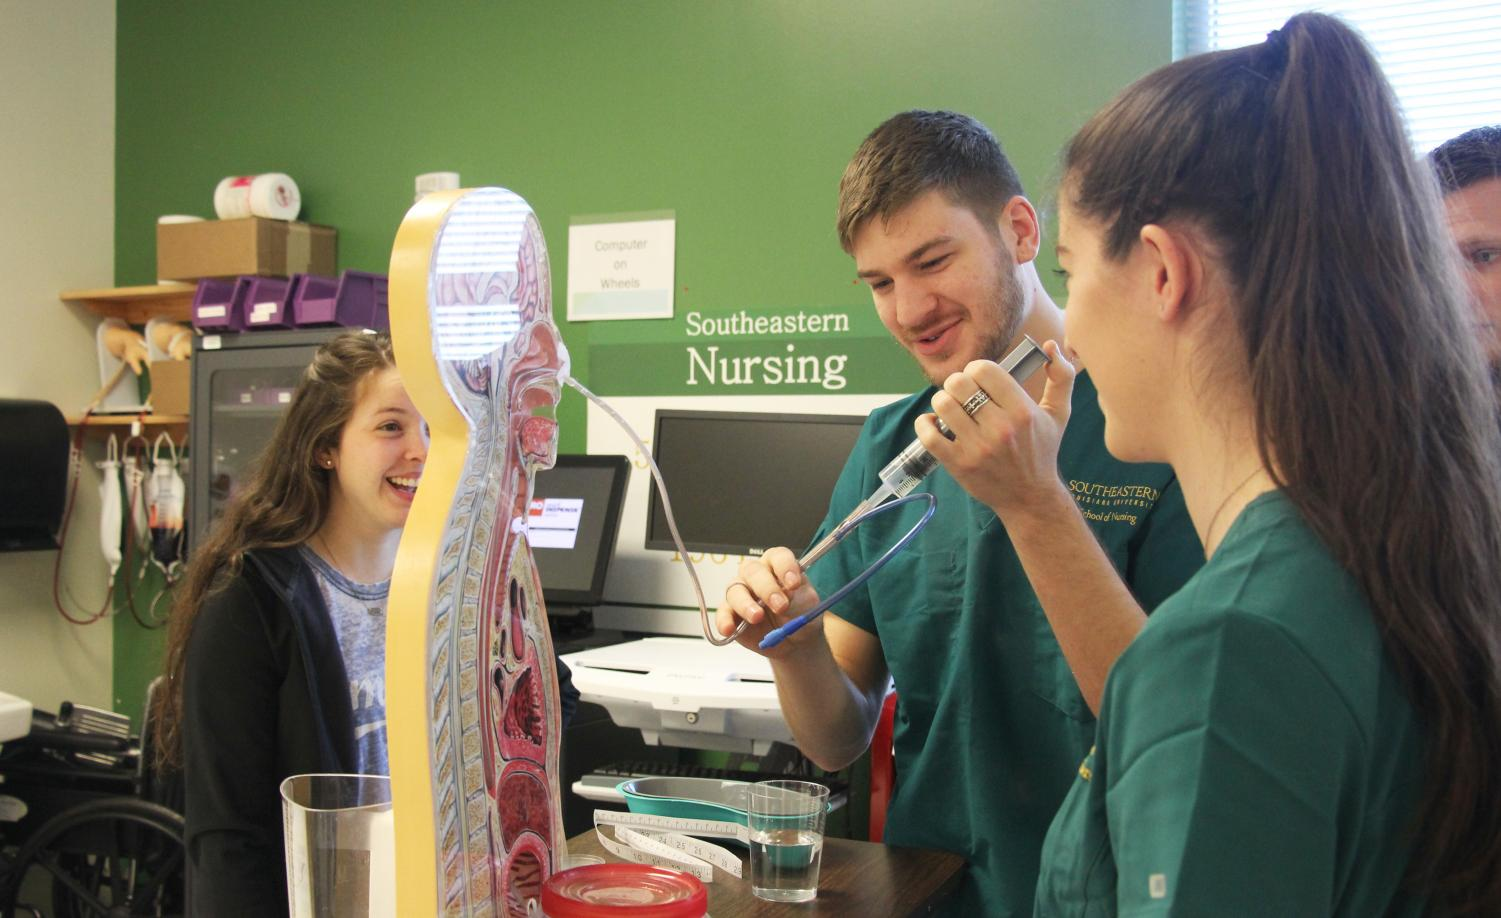 Connor Haag, a nursing major, practices a skill he and his classmates learned for a class led by Michelle Reed, an instructor of nursing. Through on-hands activities such as this, the College of Nursing aims to help prepare students for their profession.